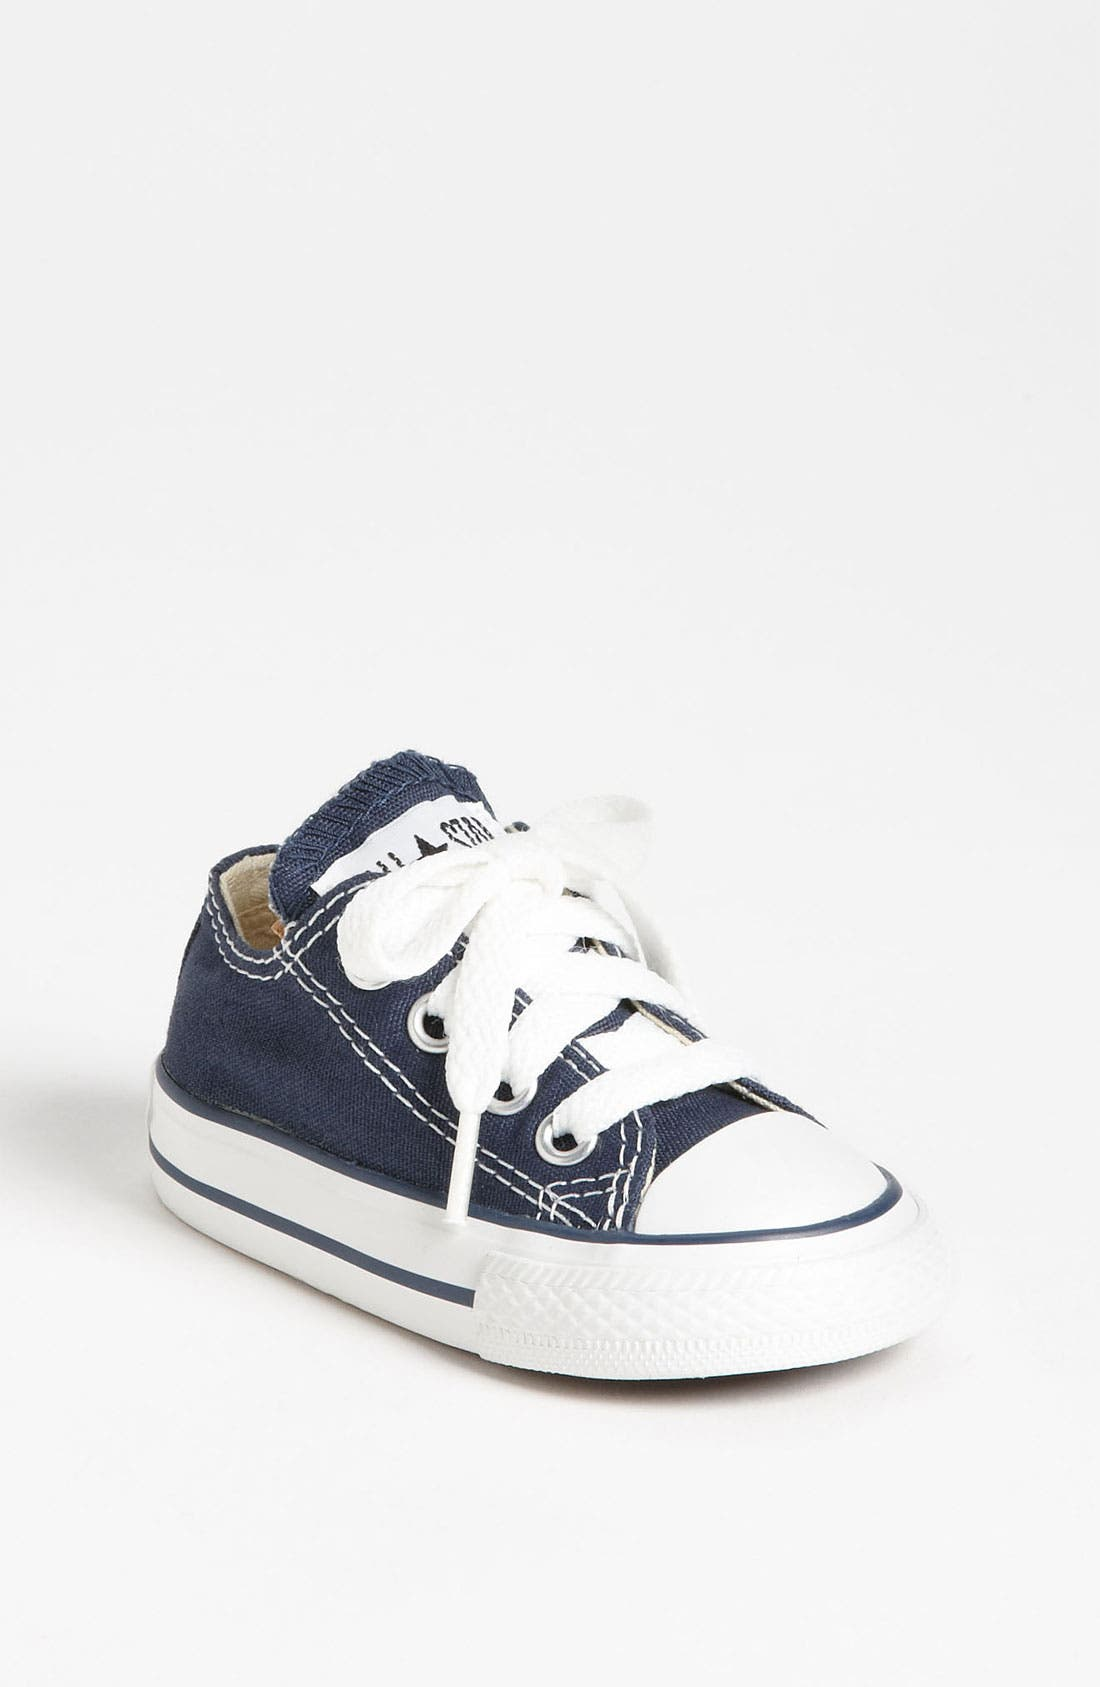 CONVERSE CHUCK TAYLOR ALL STAR OX 7J237 NAVY KIDS INFANT TODDLERS SHOES SIZE